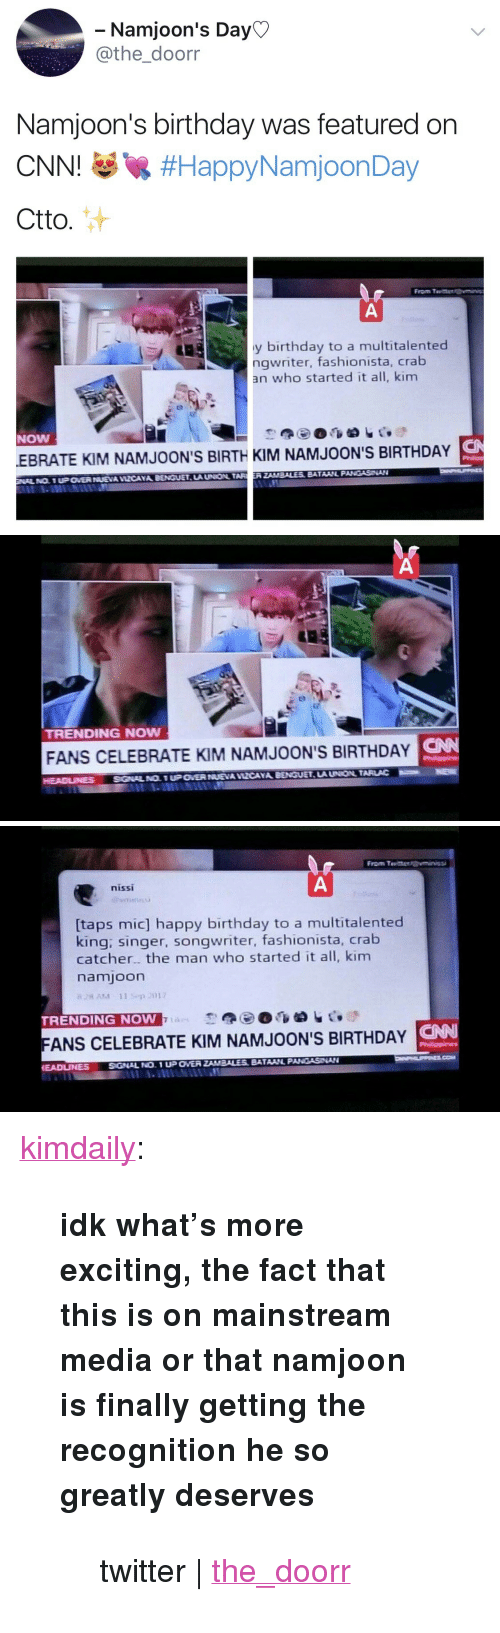 """Birthday, cnn.com, and Tumblr: Namjoon's Day  athe_doorr  Namjoon's birthday was featured on  CNNI #HappyNamjoonDay  Ctto.  From T  y birthday to a multitalented  ngwriter, fashionista, crab  an who started it all, kim  NOW  S  EBRATE KIM NAMJOON'S BIRTH KIM NAMJOON'S BIRTHDAY  LA UNION TARERZAMBALES BATAAINL PANGASNAN   TRENDING NOw  CNN  FANS CELEBRATE KIM NAMJOON'S BIRTHDAY   nissi  [taps mic] happy birthday to a multitalented  king: singer, songwriter, fashionista, crab  catcher. the man who started it all, kim  namjoon  TRENDING NOW  FANS CELEBRATE KIM NAMJOON'S BIRTHDAY N  EADUNNESSGNAL NO. 1 UP OVER <p><a href=""""http://kimdaily.tumblr.com/post/165274590943"""" class=""""tumblr_blog"""">kimdaily</a>:</p><blockquote> <p><b>idk what's more exciting, the fact that this is on mainstream media or that namjoon is finally getting the recognition he so greatly deserves</b></p> <blockquote><p>twitter 